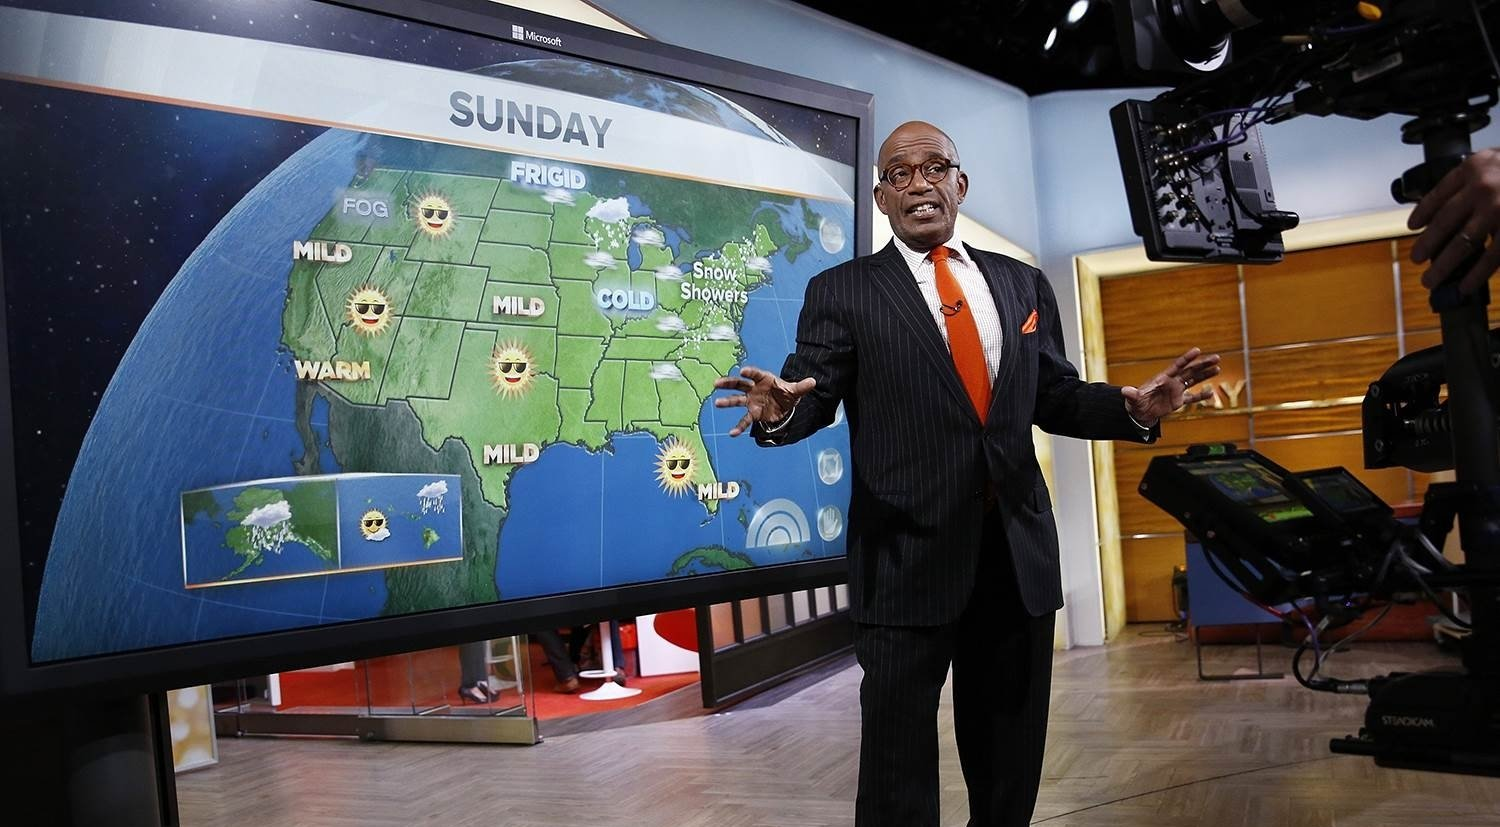 Al Roker forecasting weather update on Today